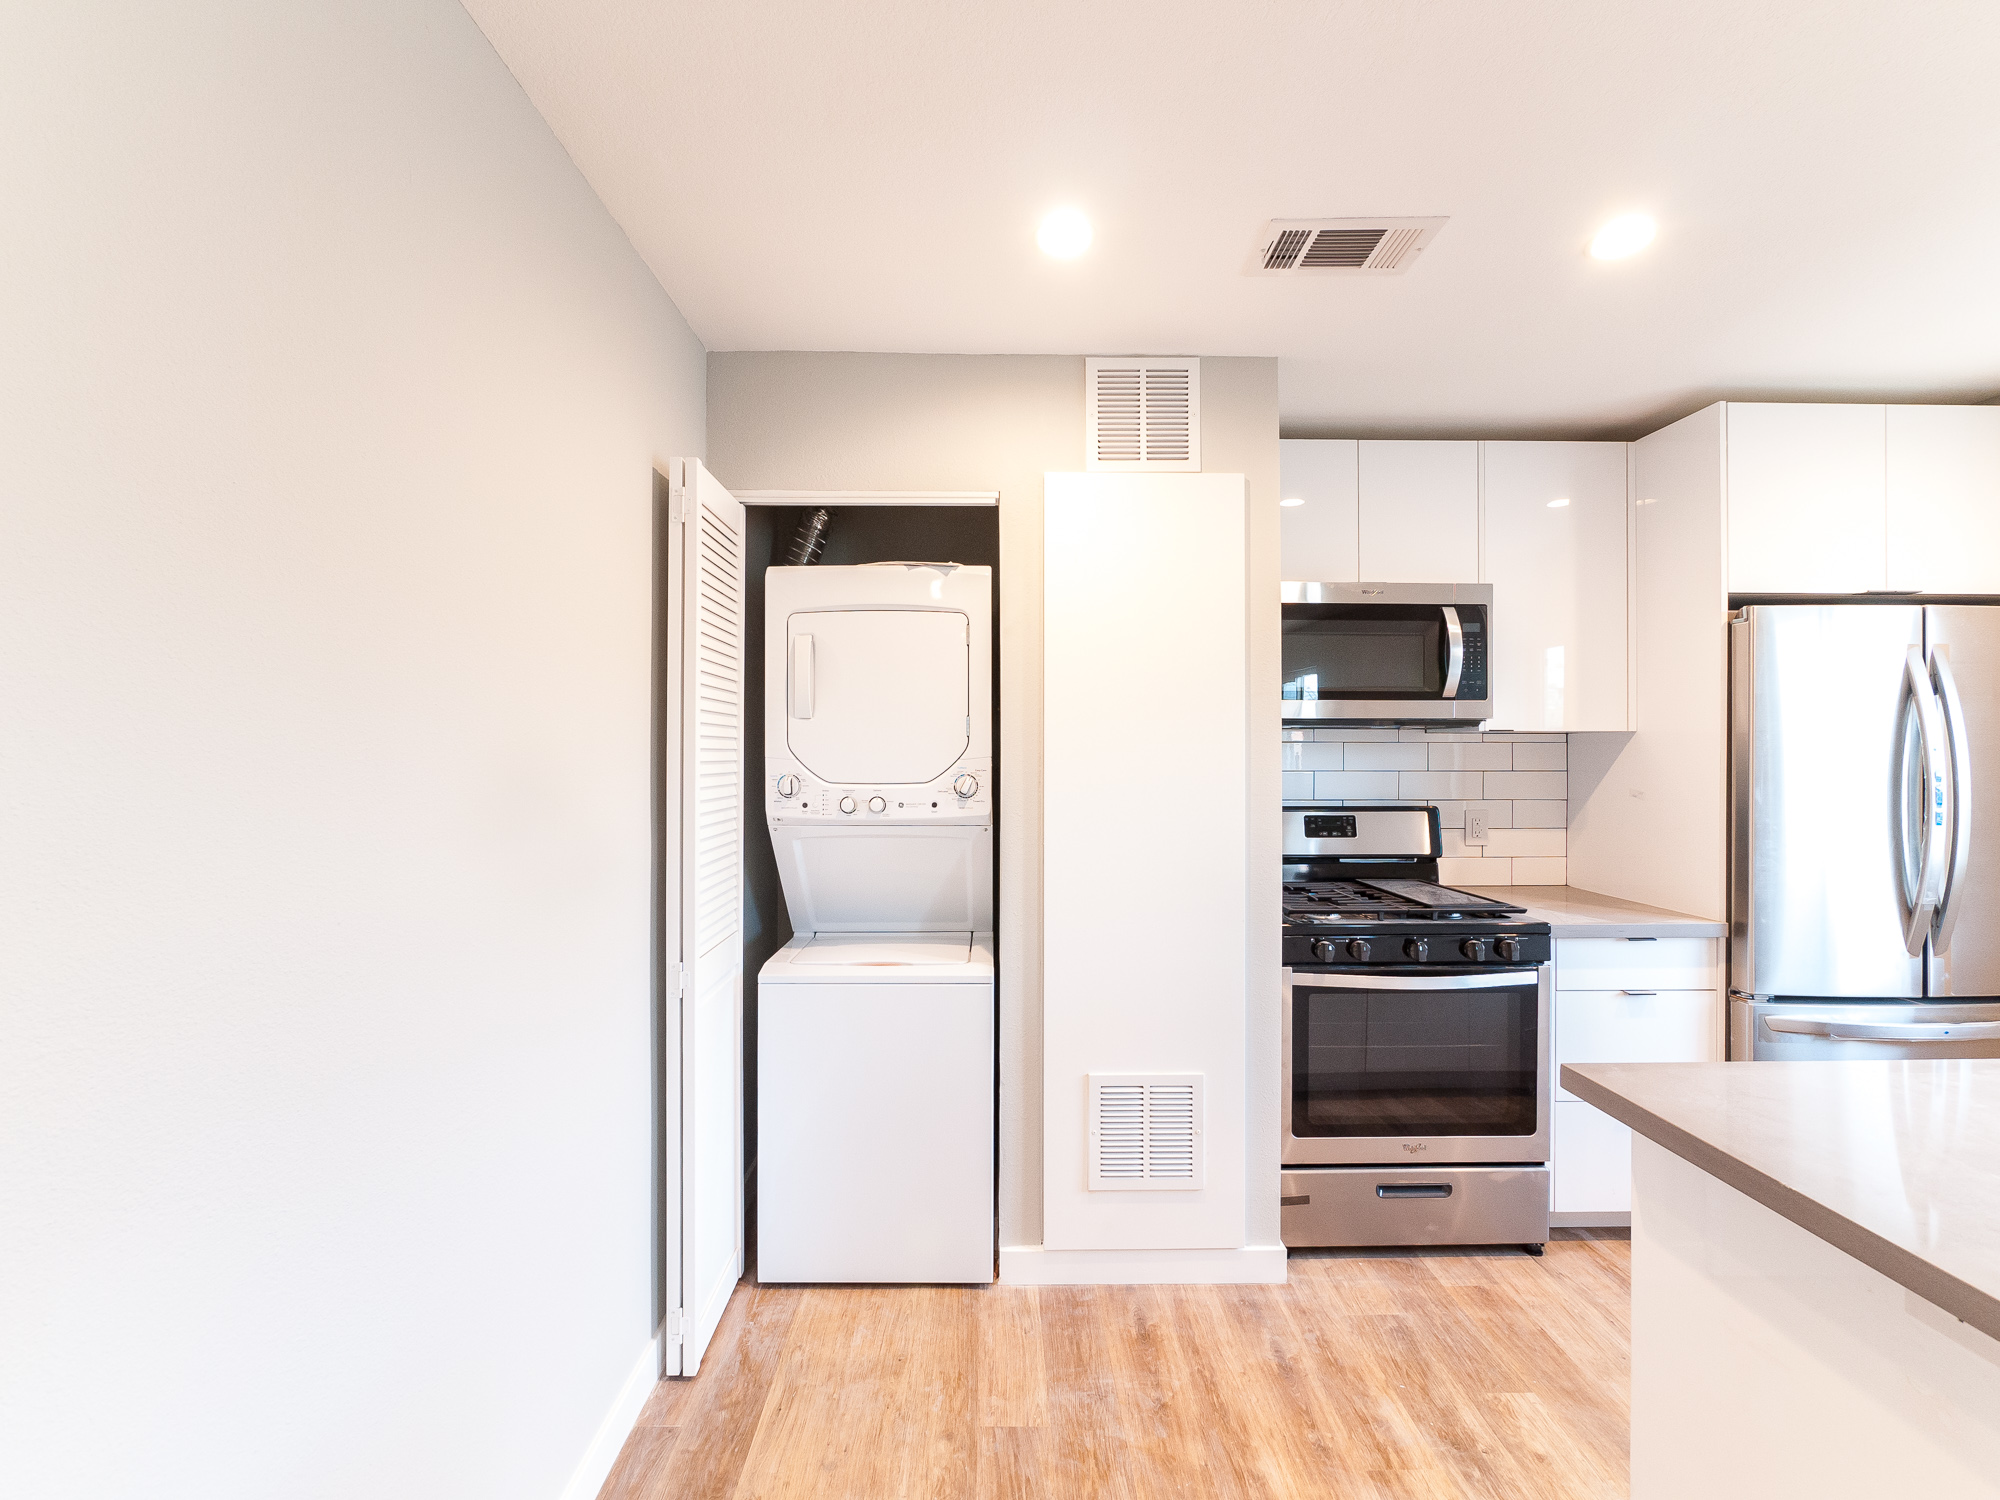 Contemporary, Stylish Luxury: Brand-New 2 Bedroom/ 1 Baths in Hollywood!